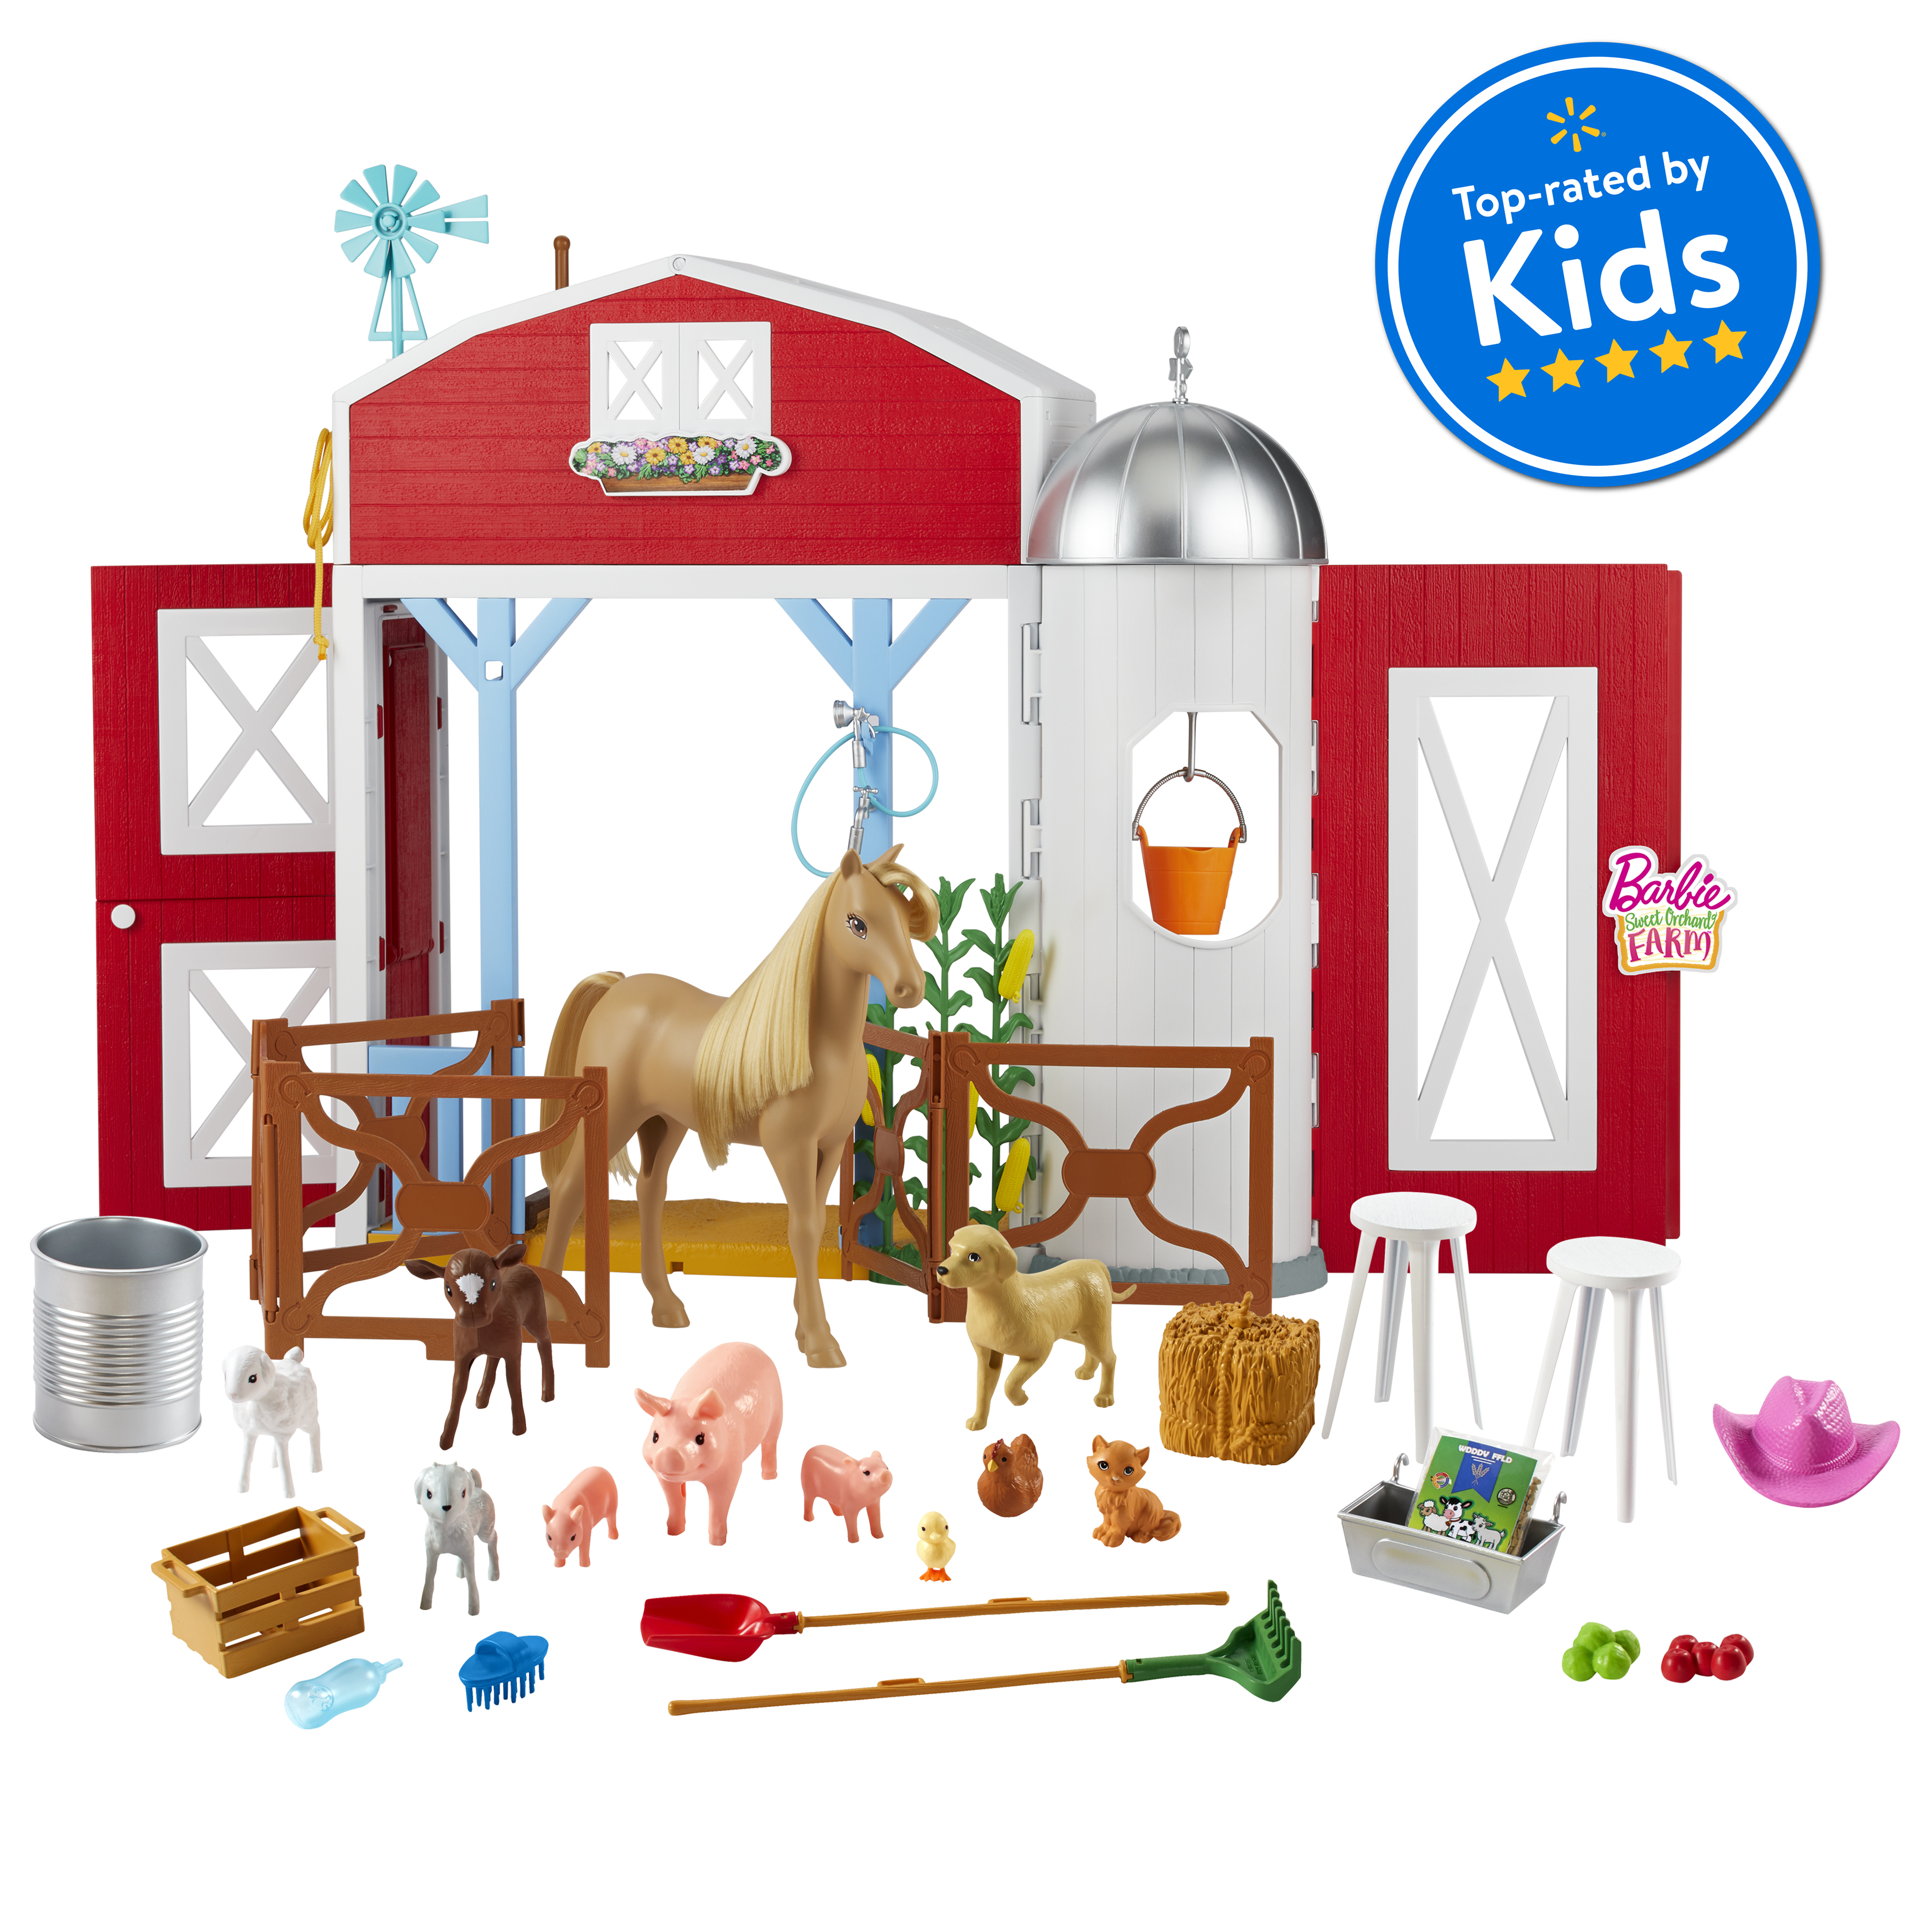 Barbie Sweet Orchard Farm Playset With Barn 11 Animals Working Features 15 Pieces Doll Sold Separately Walmart Com Walmart Com